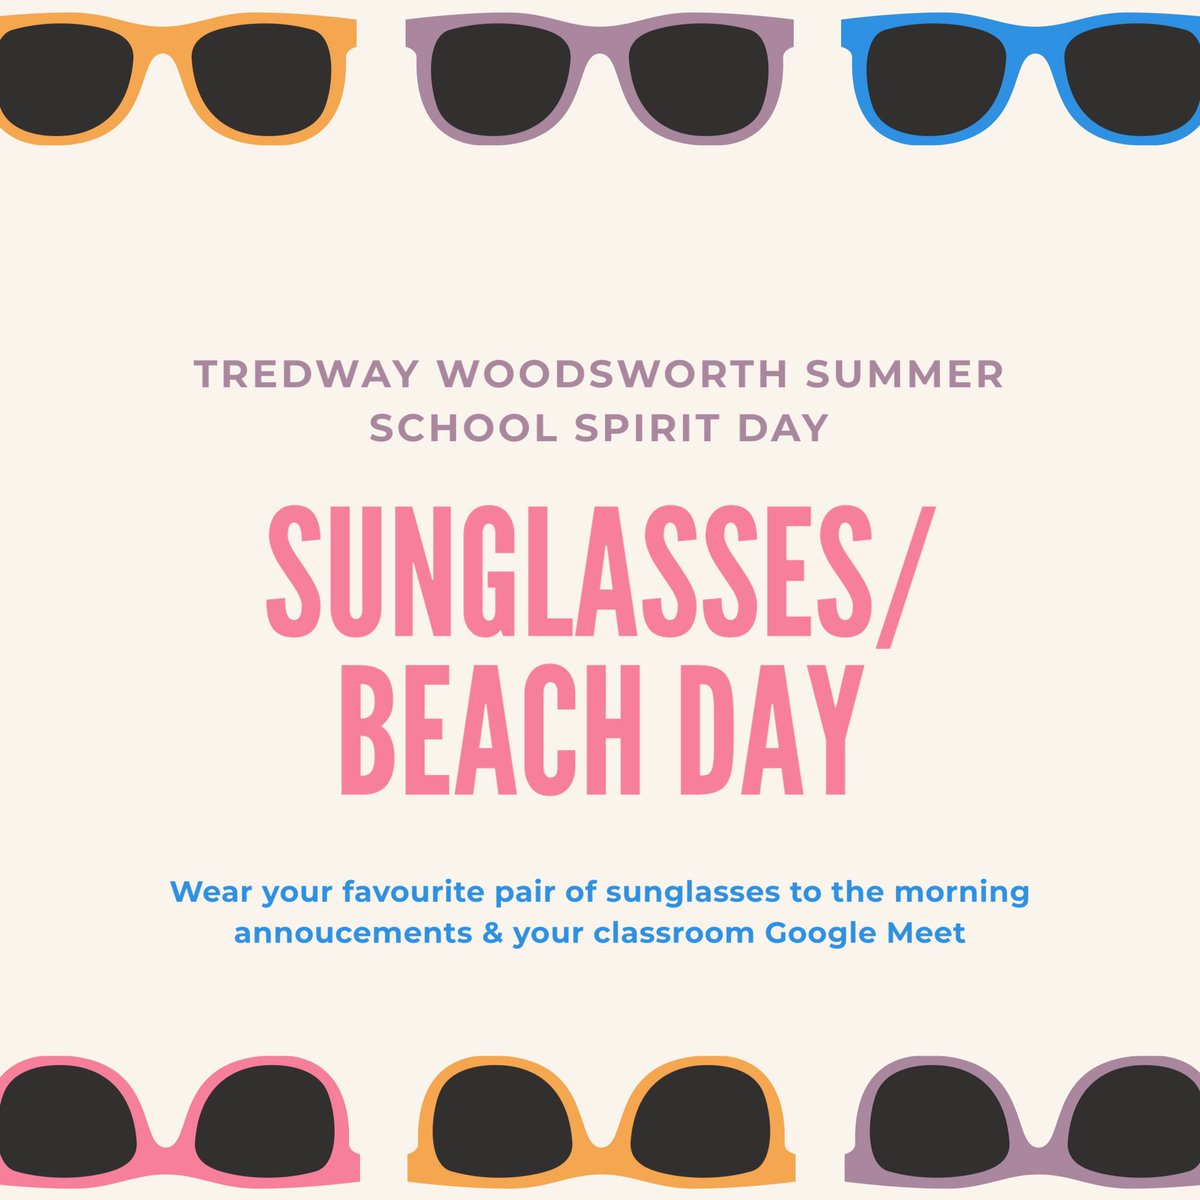 Summer School Spirit Week 4 @TWPublicSchool: Sunglasses/ Beach day! Wear your sunglasses on Thursday, July 30th on our morning announcements & your classroom Google Meets! @TDSB_ConEd @norbert_costa @LC3_TDSB